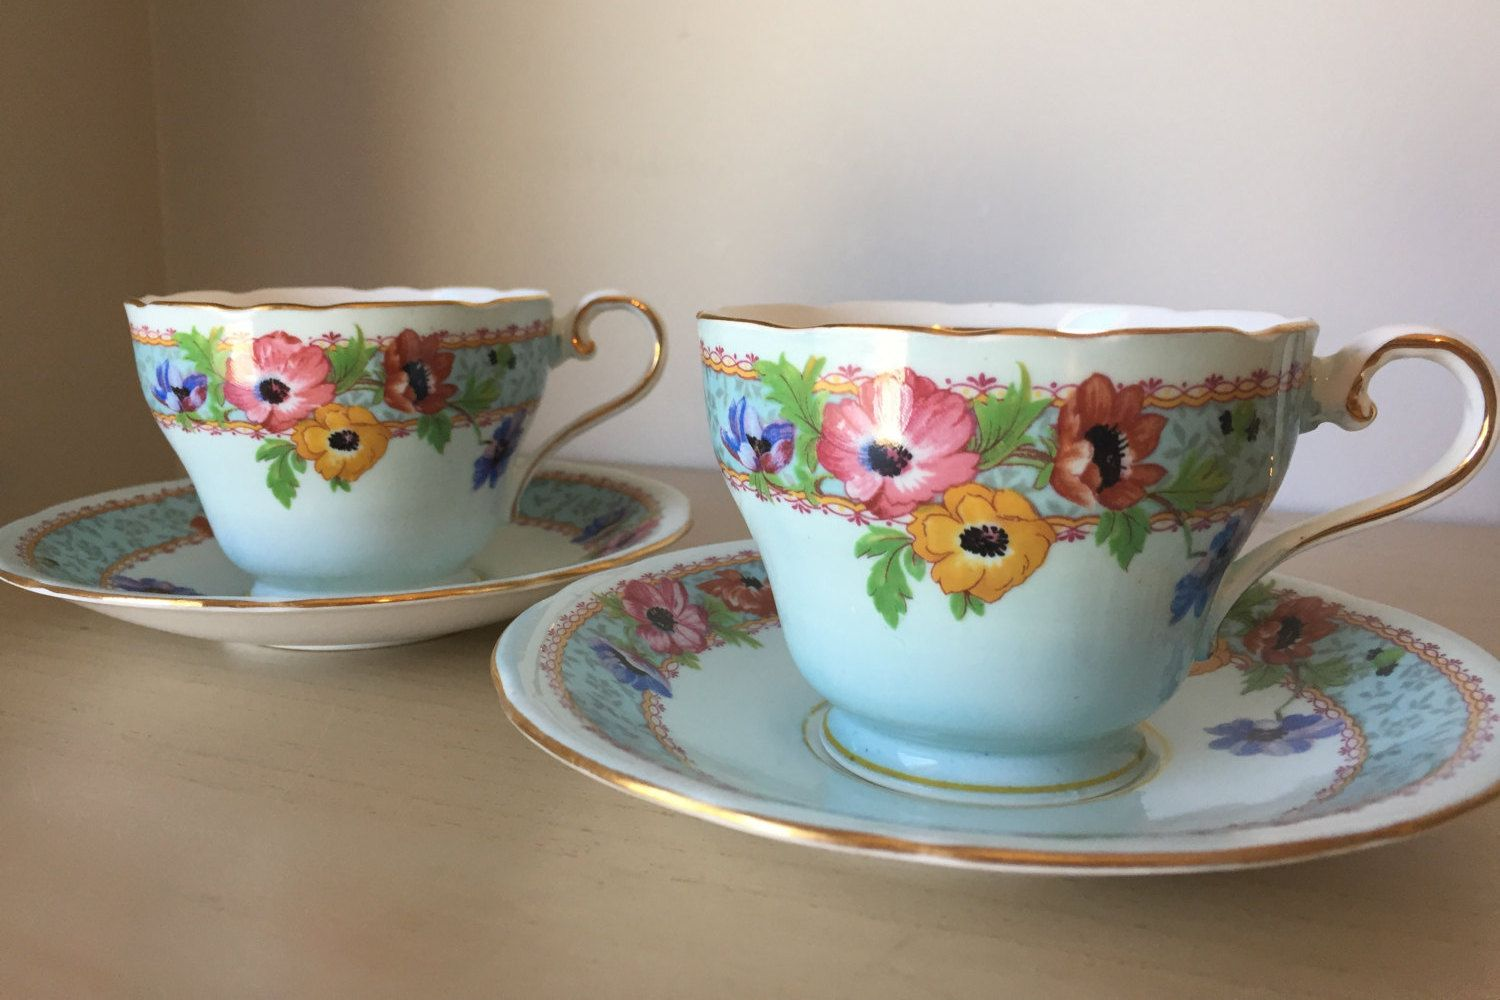 Aynsley Vintage Teacup Duos, Light Blue Poppy Tea Cups and Saucers, Floral English Bone China, Tea for Two by CupandOwl on Etsy